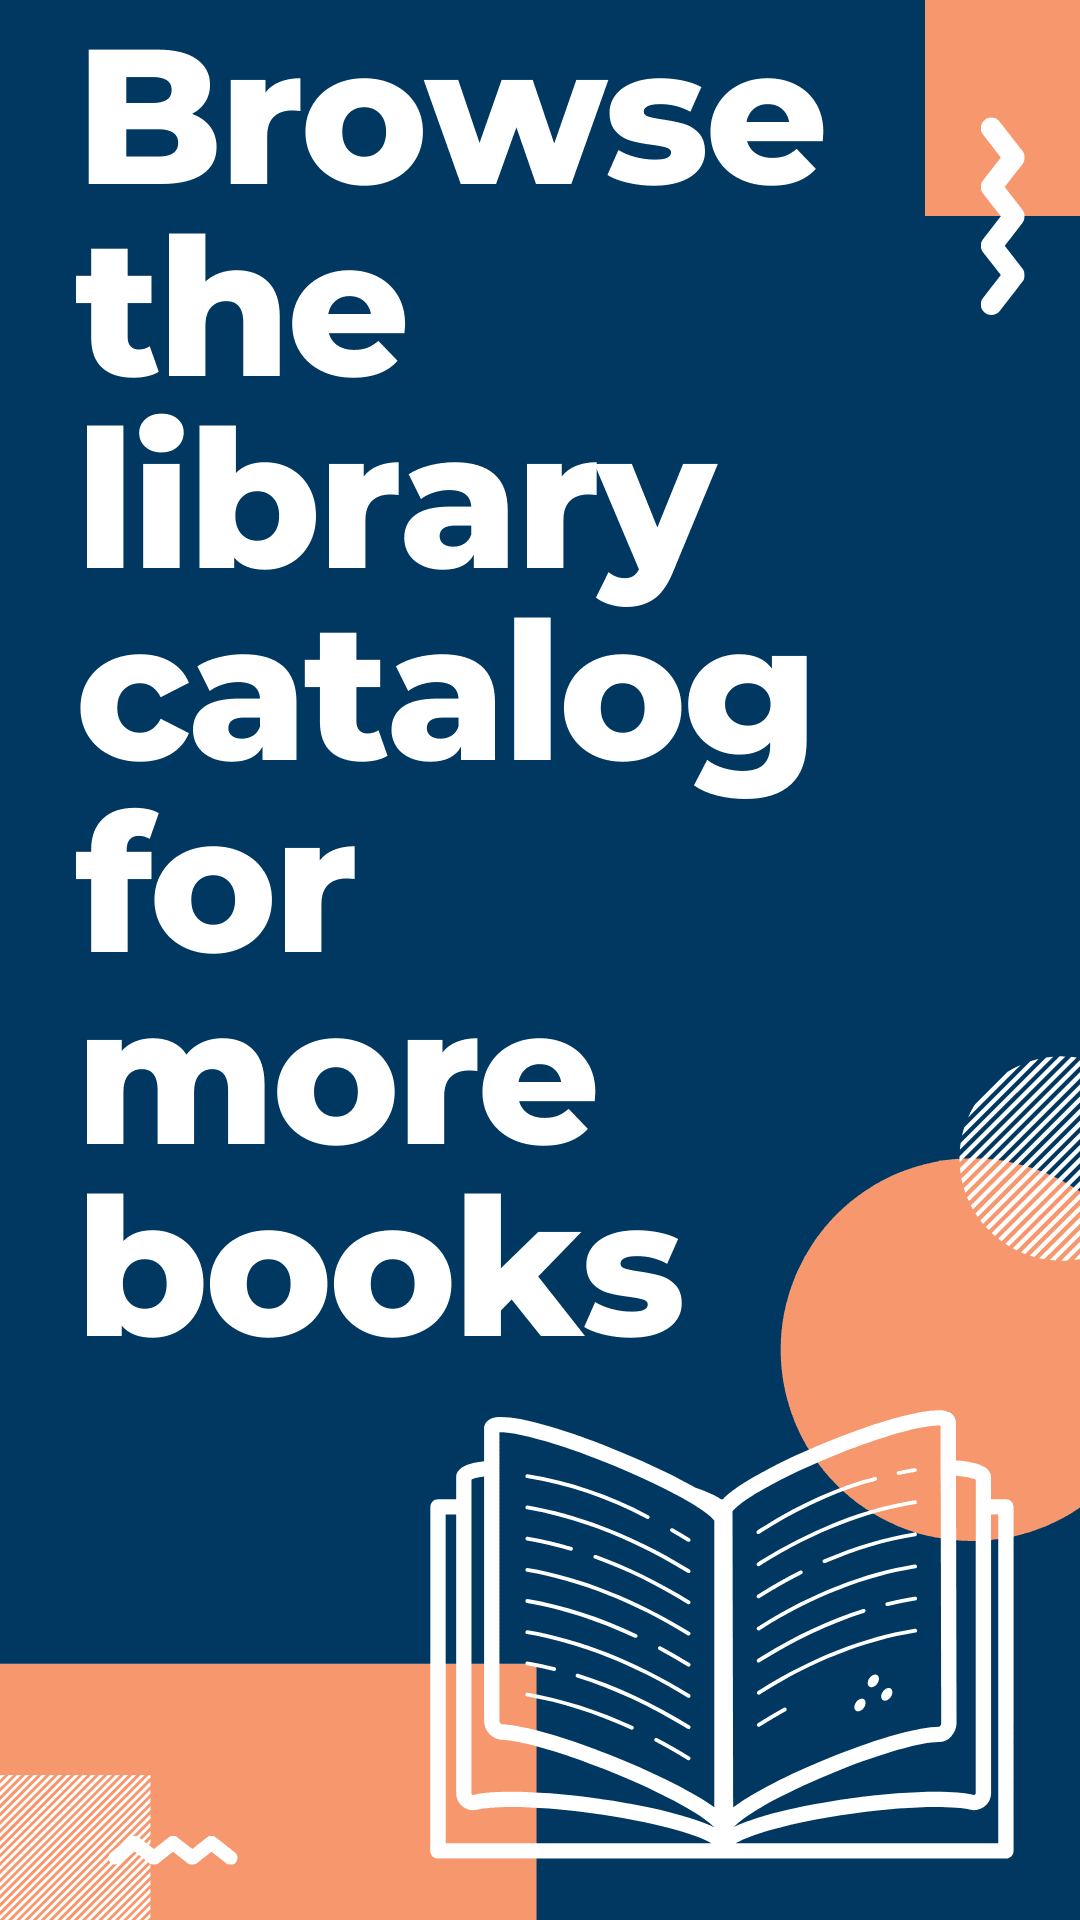 Browse for More Books